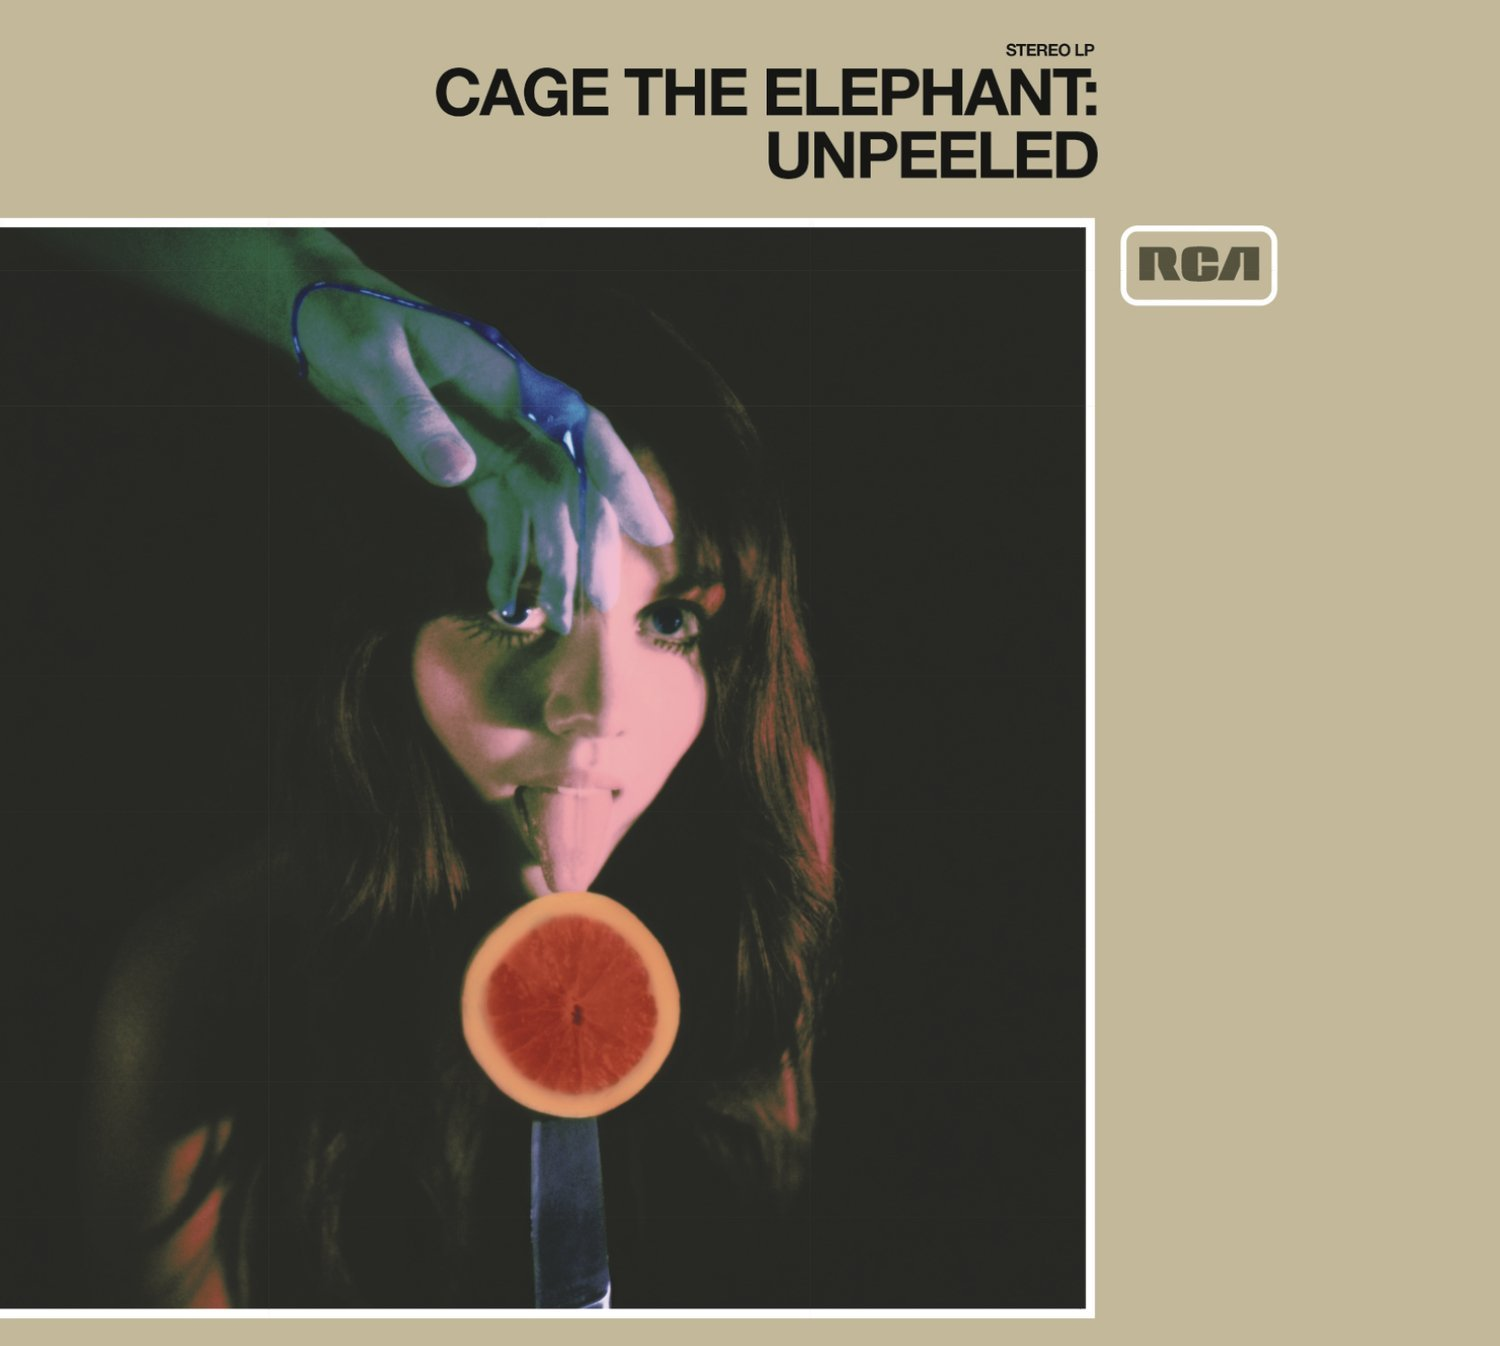 Cage The Elephant: Unpeeled [Album Review]